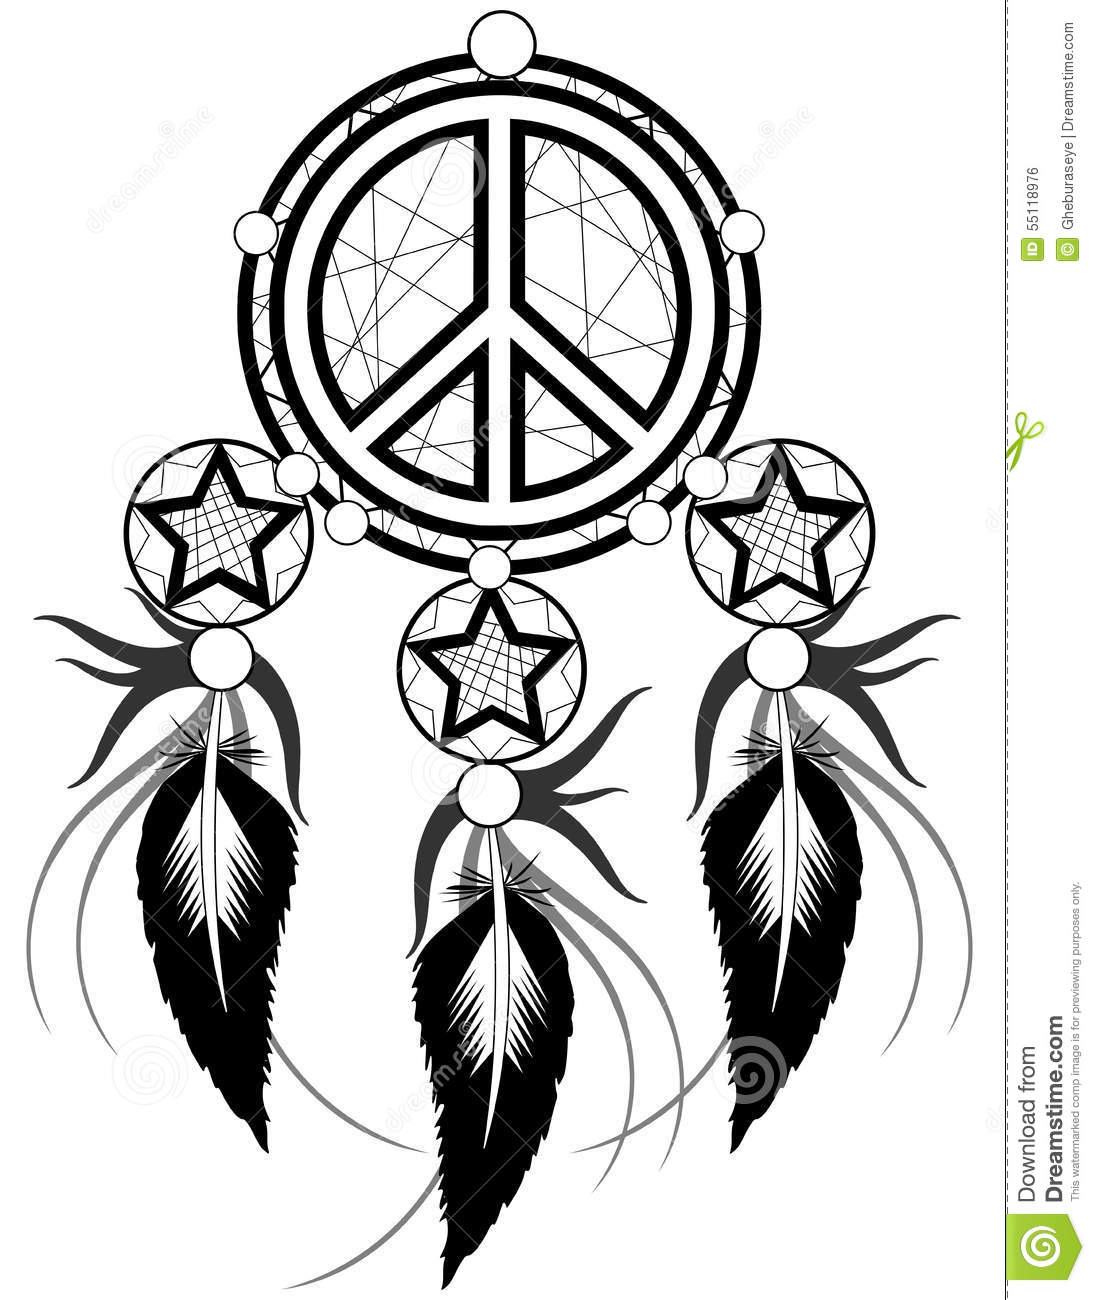 Black Banishes Thoughts With Symbol Of Peace Stock Vector